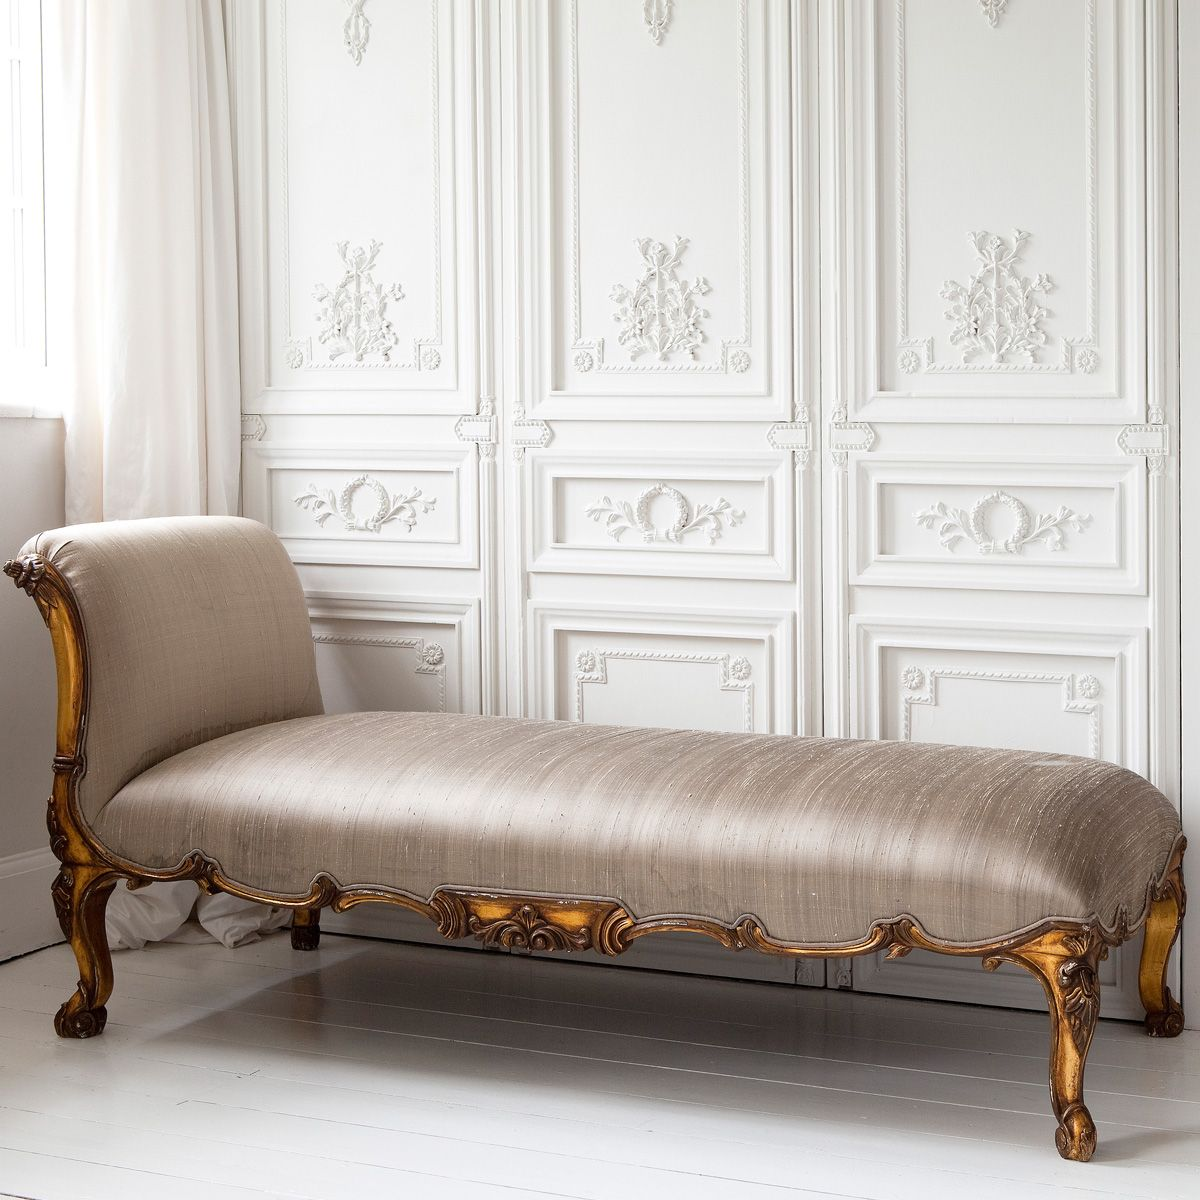 Versailles gold chaise longue french bedrooms chaise for Bedroom chaise lounge